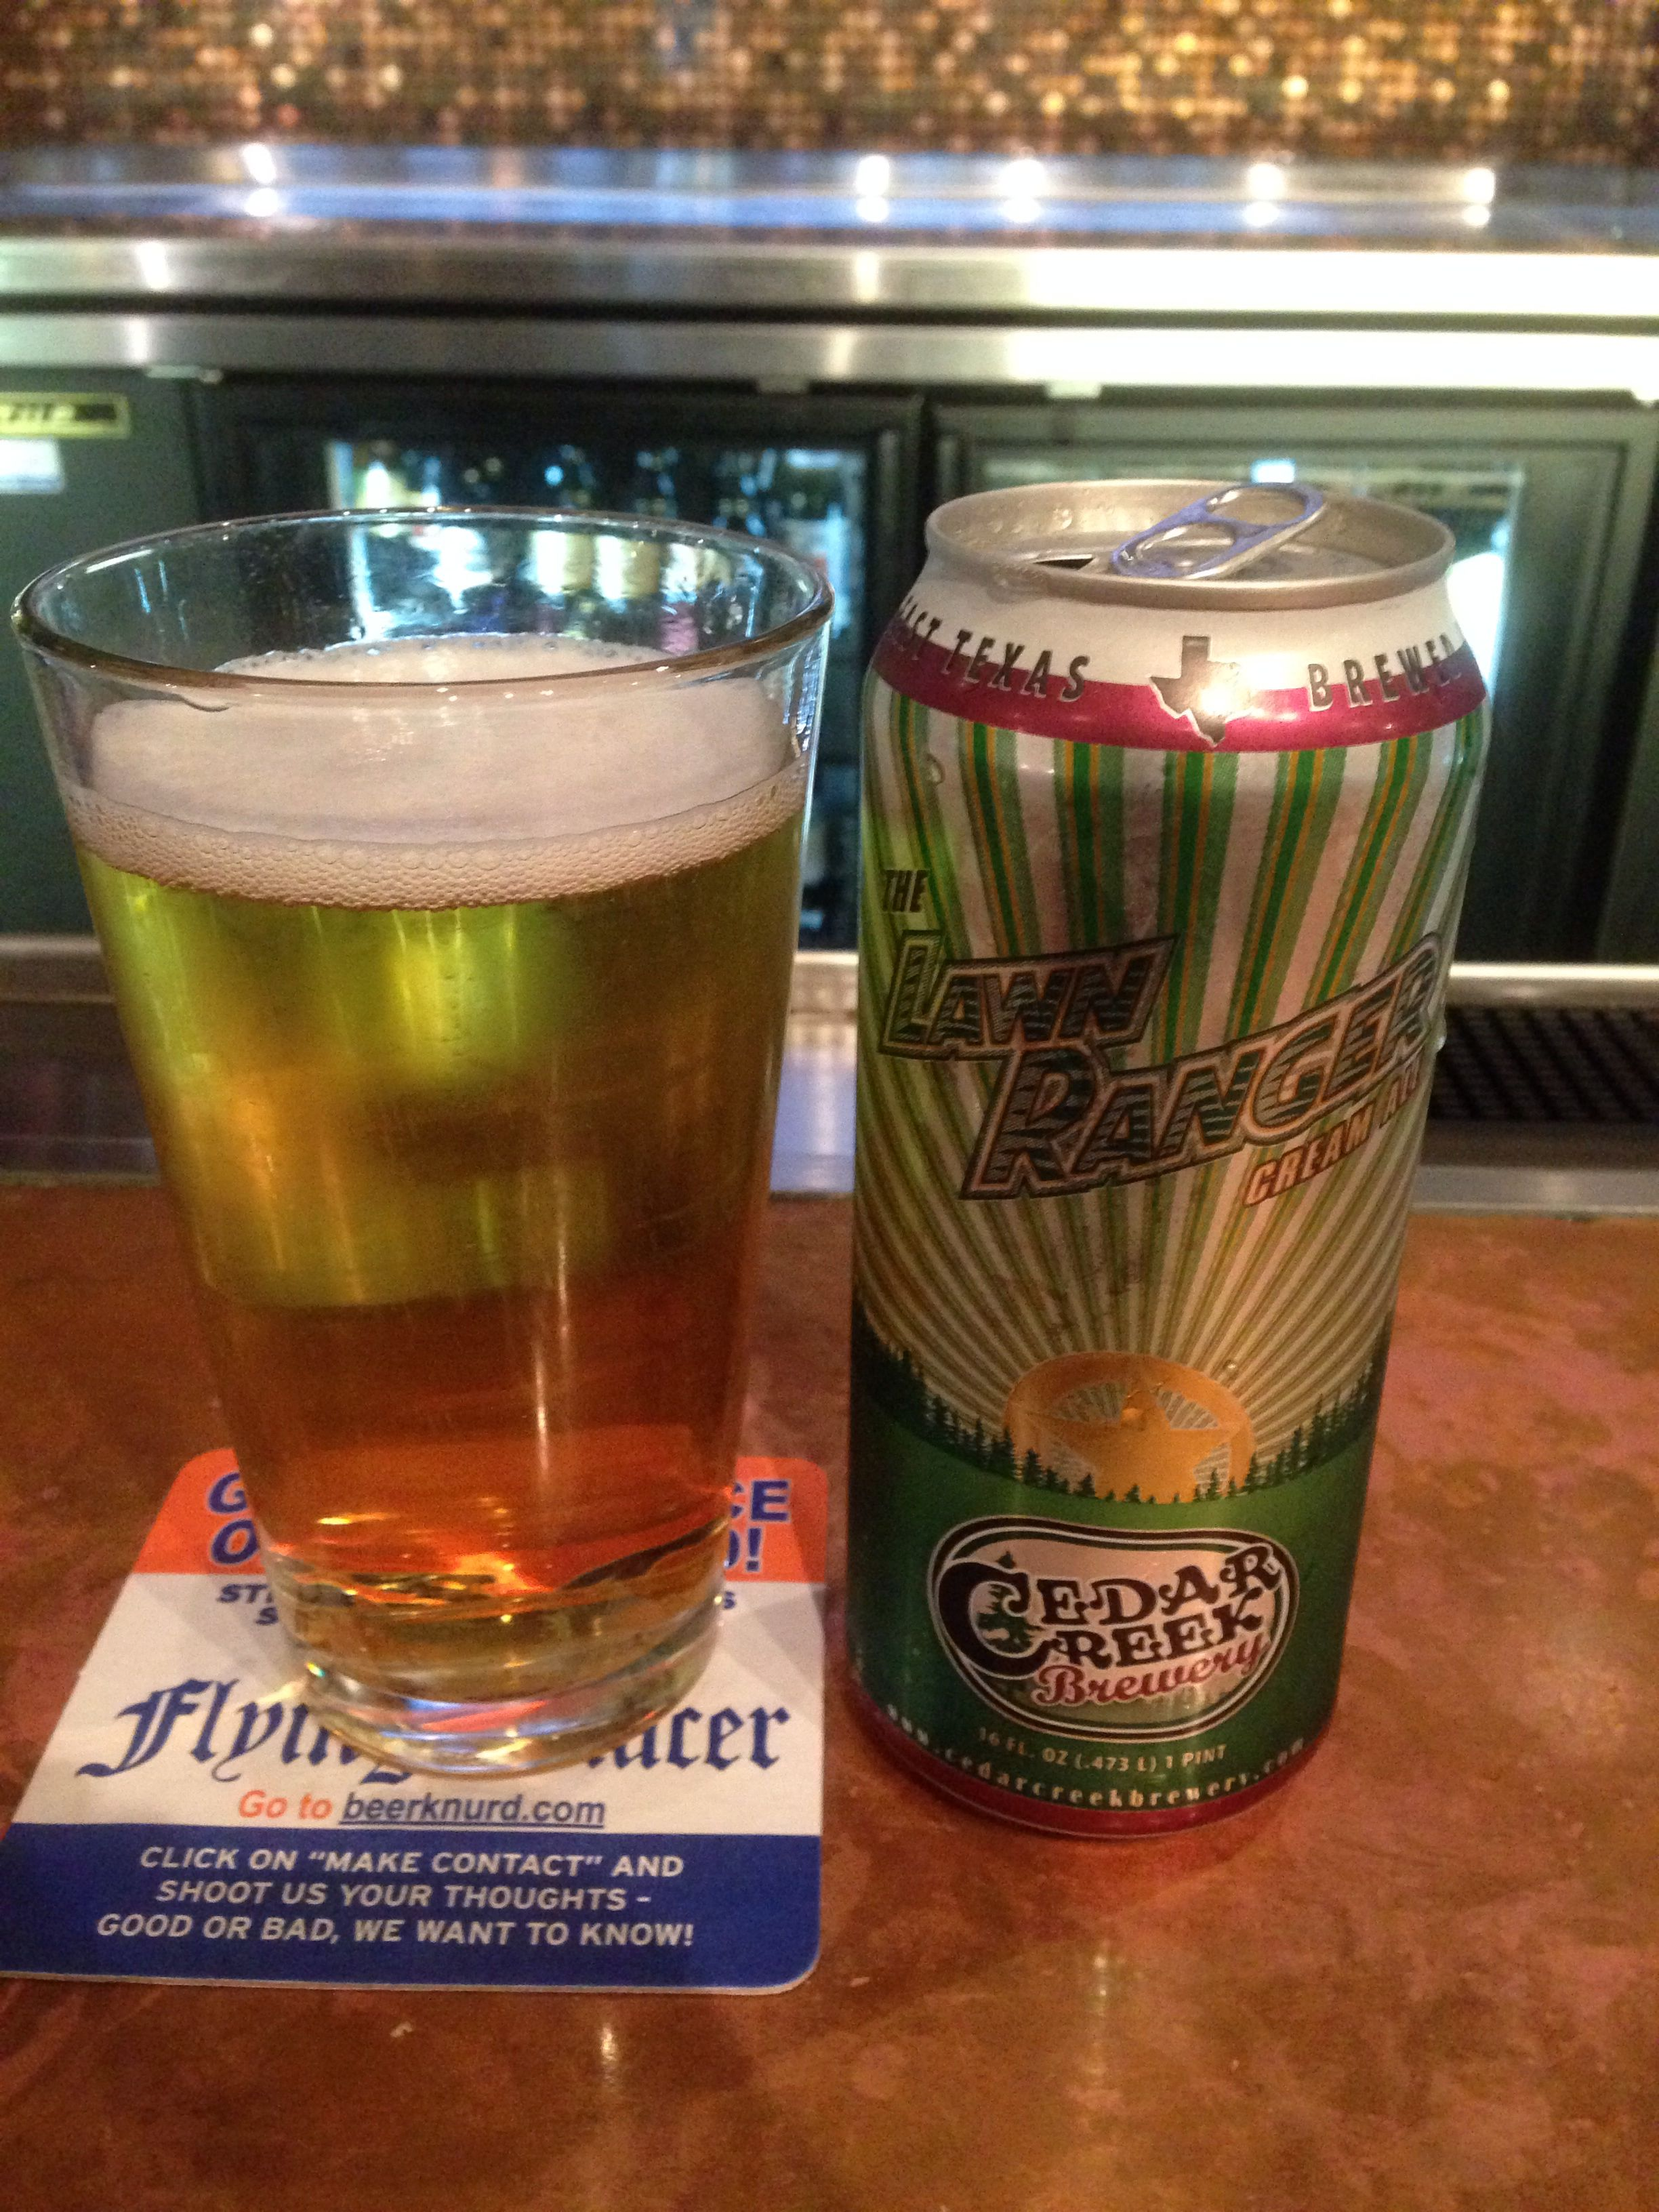 The Lawn Ranger cream ale by Cedar Creek Brewery in Seven Points, TX.  About 5 %abv.